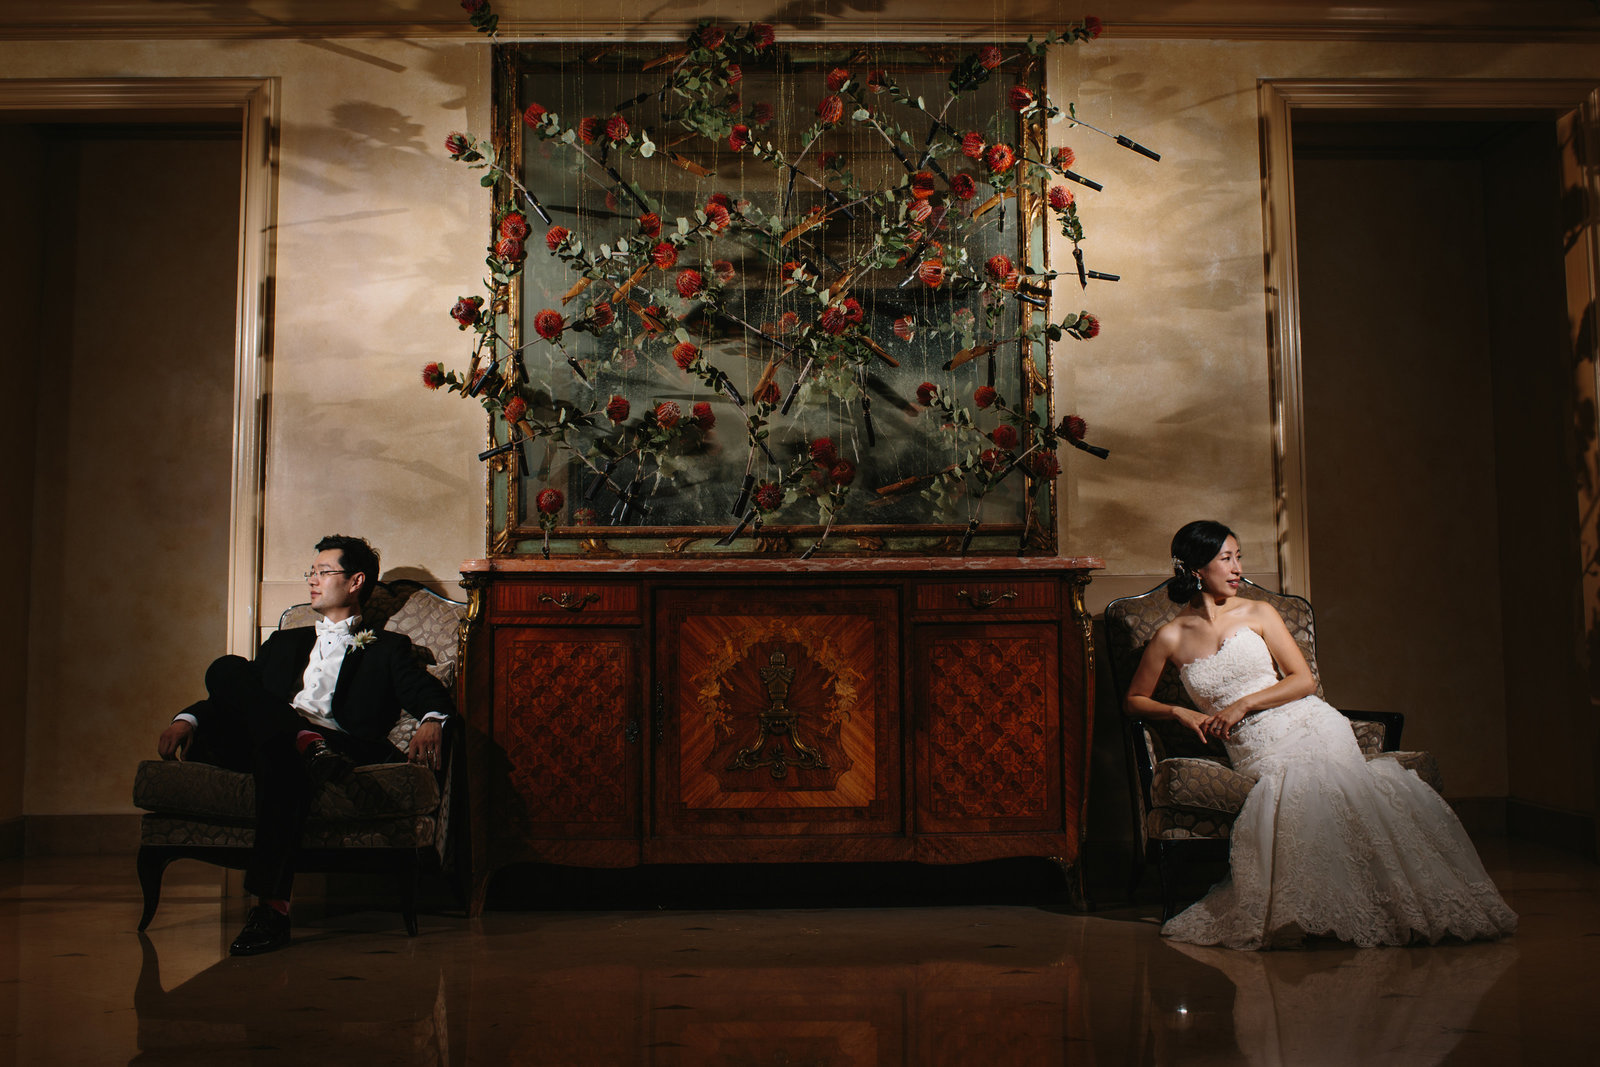 Dramatic bride and groom photo  in hotel lobby sitting on either side of hanging flowers